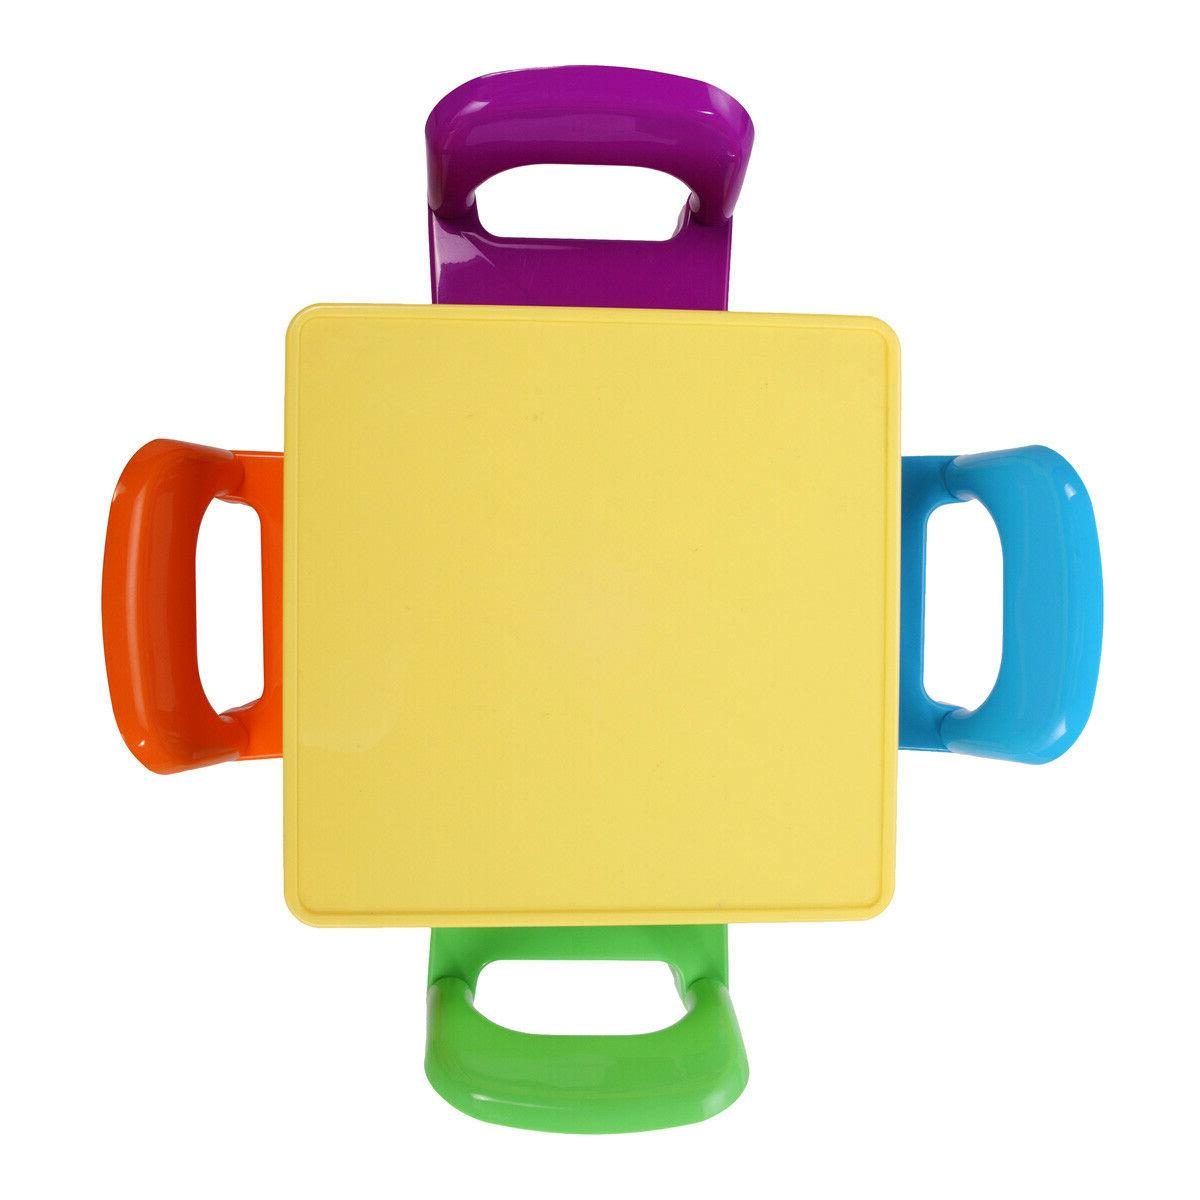 4 Chairs Rainbow Play Set Vibrant Colors